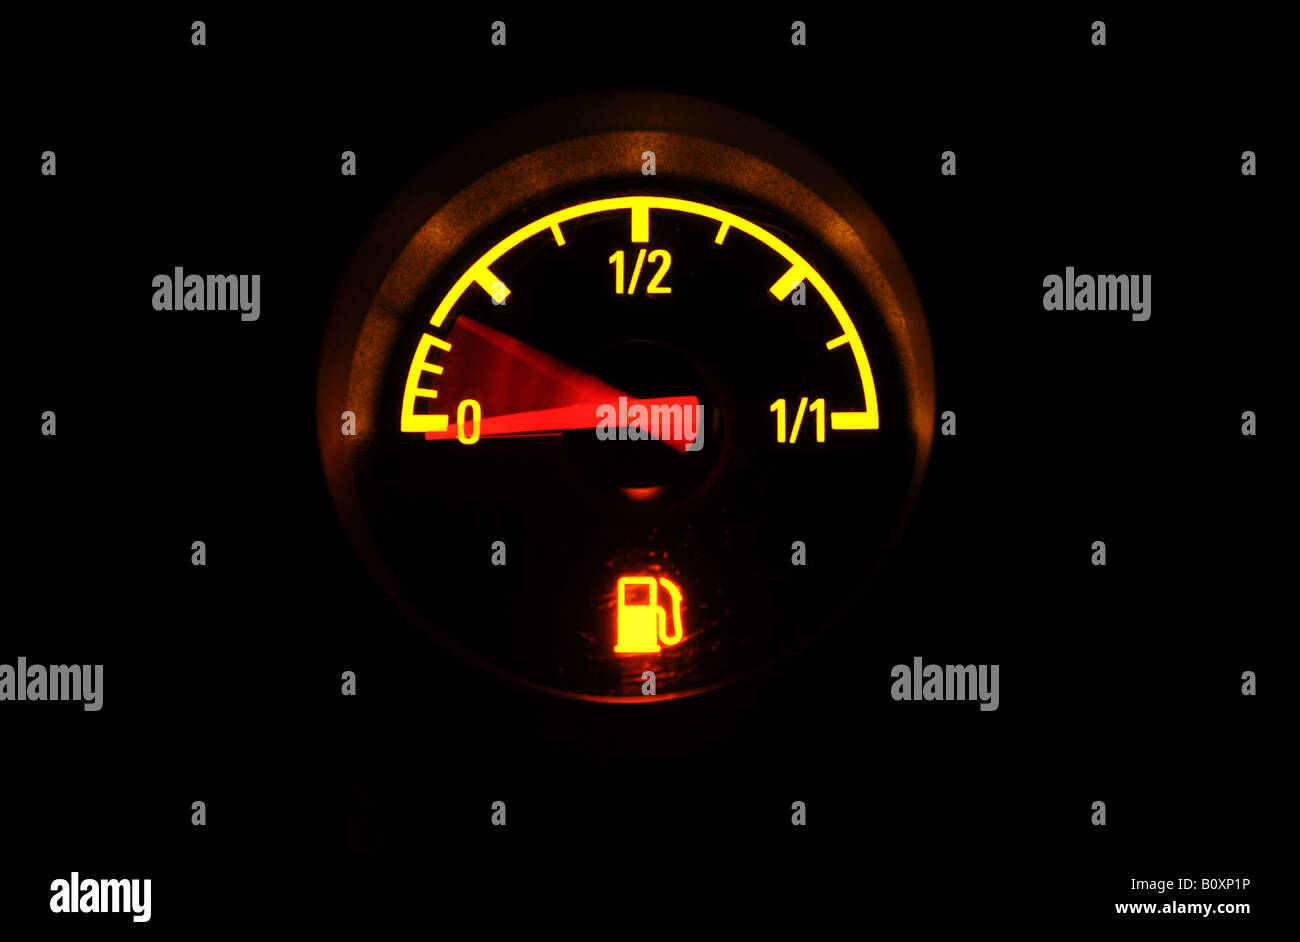 A BRITISH CAR FUEL GAUGE SHOWING LOW FUEL WITH RED WARNING LIGHTUK.  sc 1 st  Alamy & A BRITISH CAR FUEL GAUGE SHOWING LOW FUEL WITH RED WARNING LIGHTUK ...